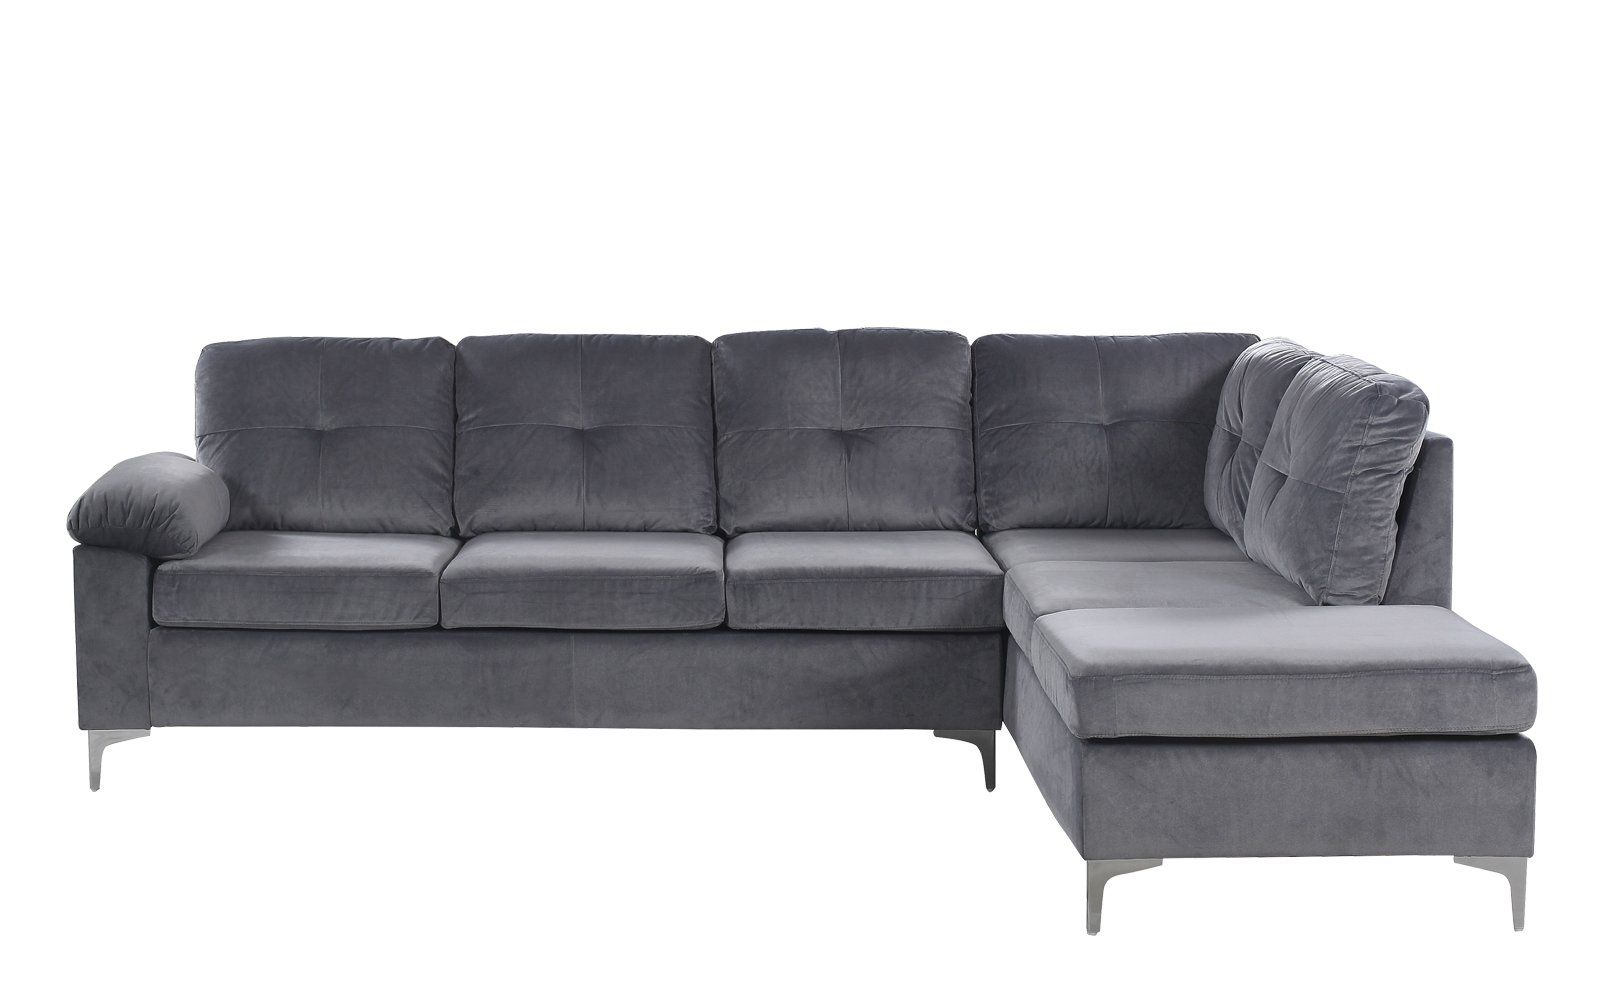 Cool Helsinki Modern Tufted Brush Microfiber Sectional Sofa For Dailytribune Chair Design For Home Dailytribuneorg